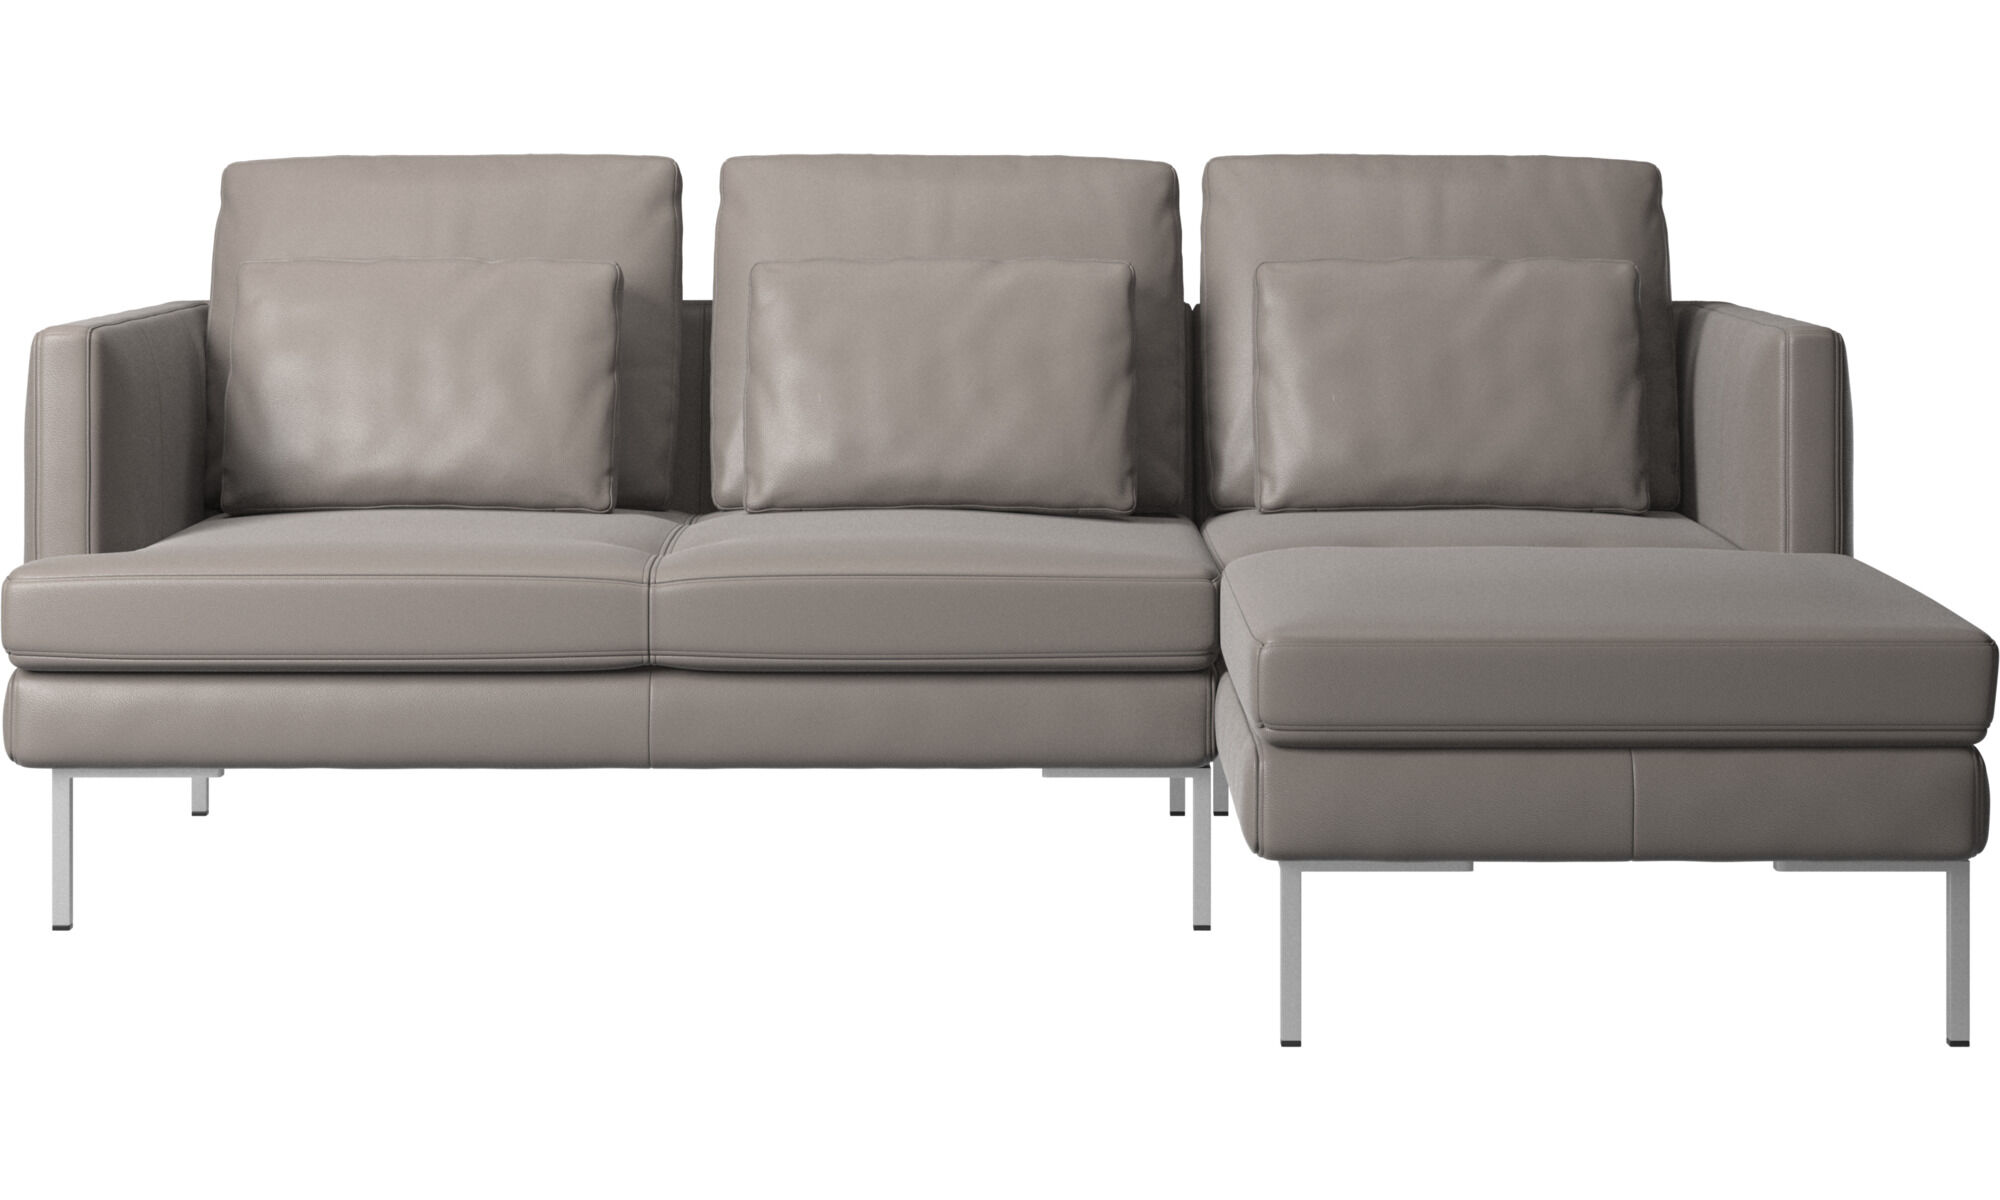 3 seater sofas - Istra 2 sofa with resting unit - Beige - Leather  sc 1 st  BoConcept : chaise lounge leather furniture - Sectionals, Sofas & Couches